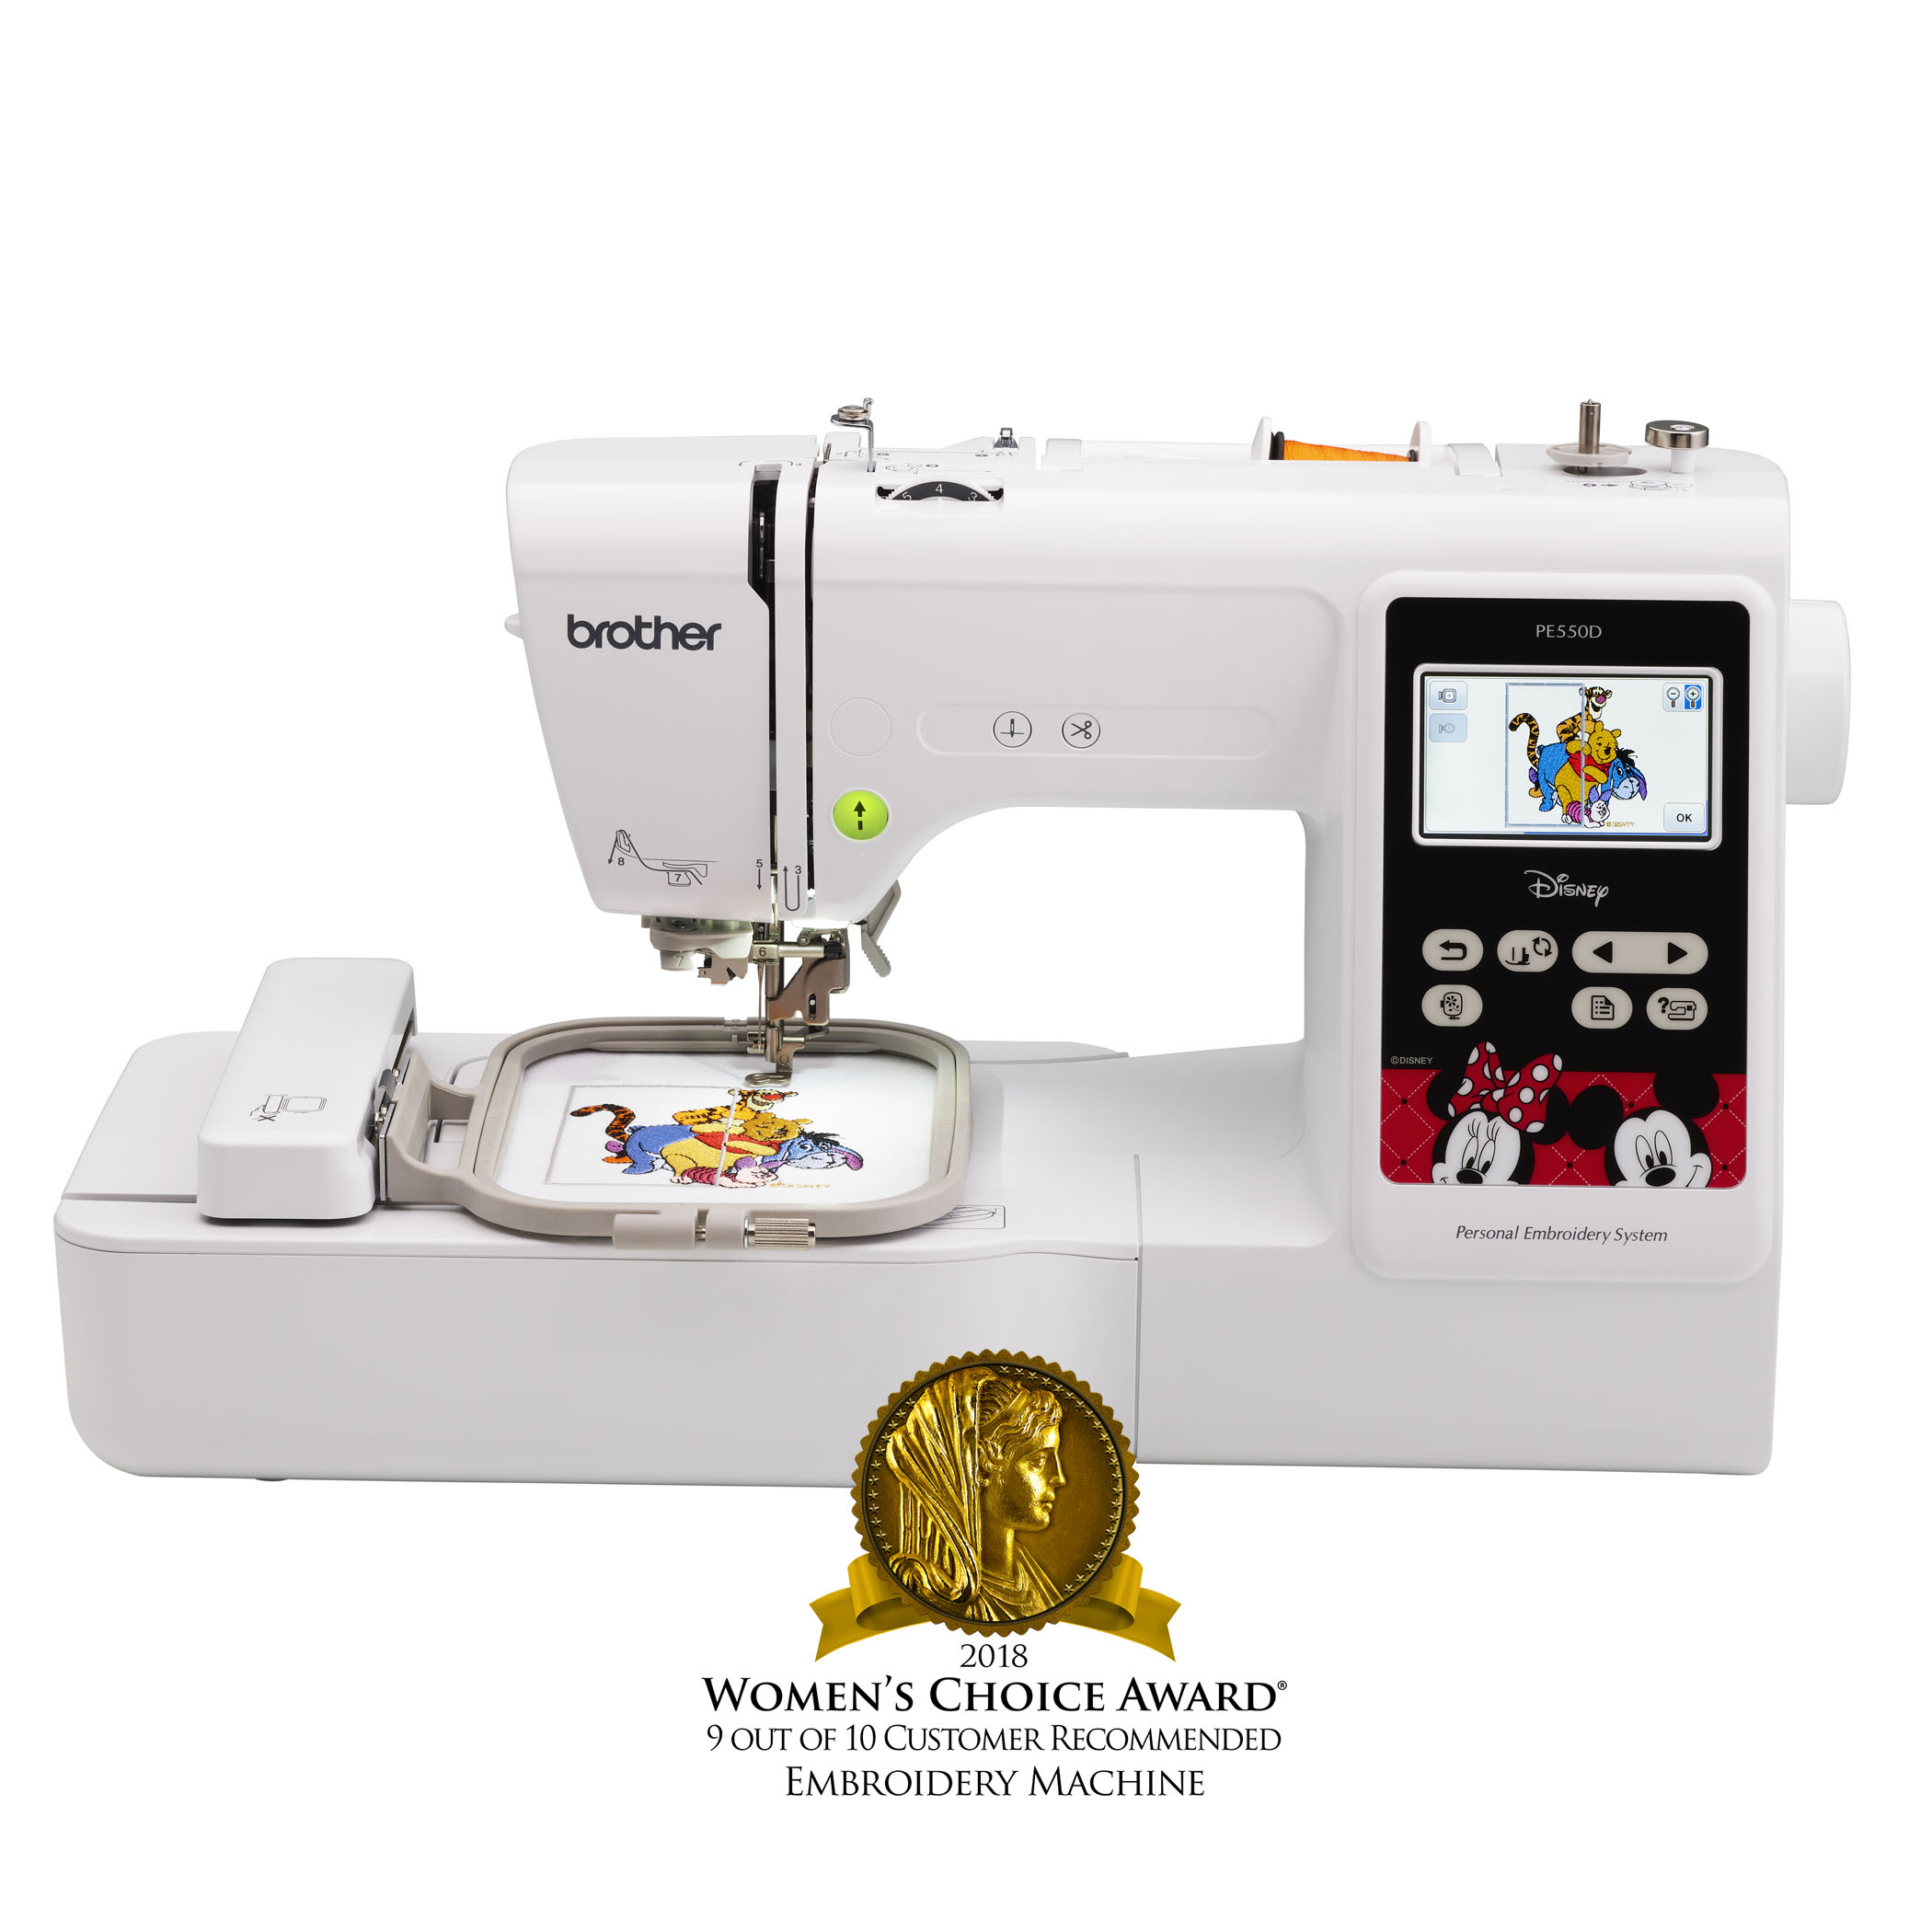 Brother, PE550D Embroidery Machine with built-in Disney designs